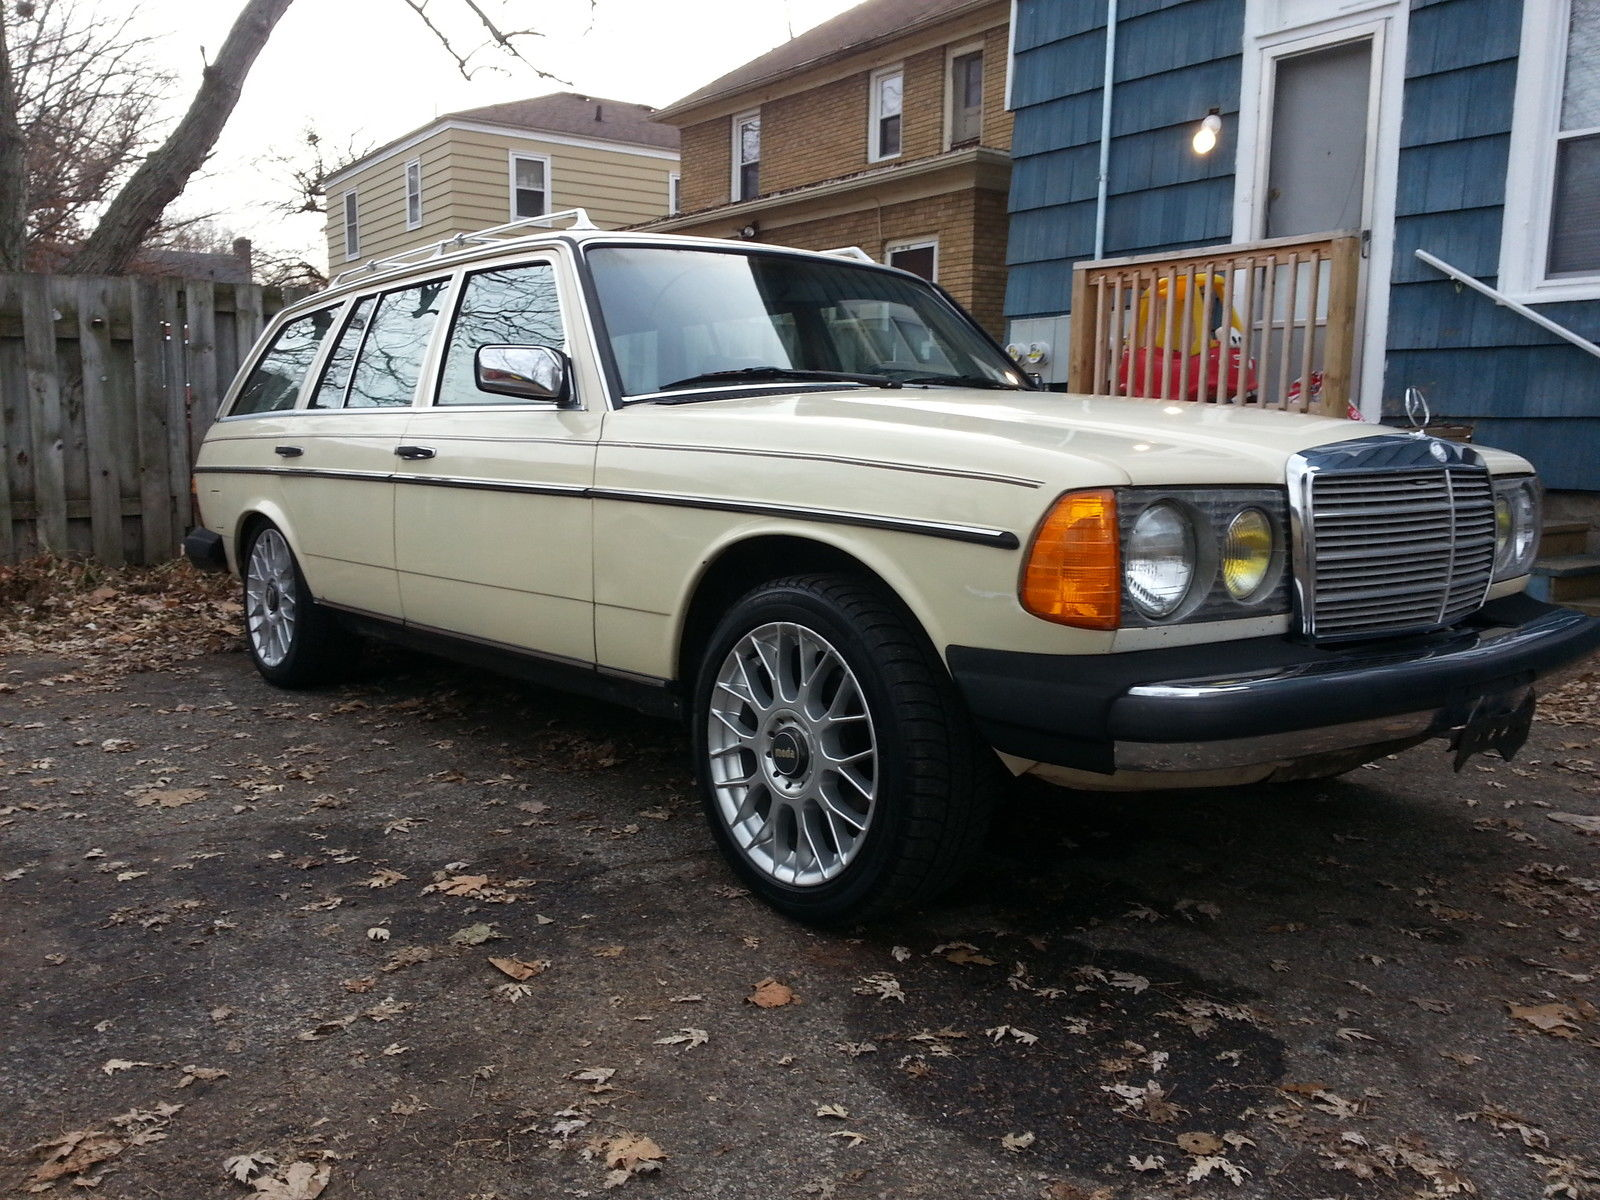 1983 mercedes benz w123 300td turbo diesel wagon for Mercedes benz diesel engines for sale